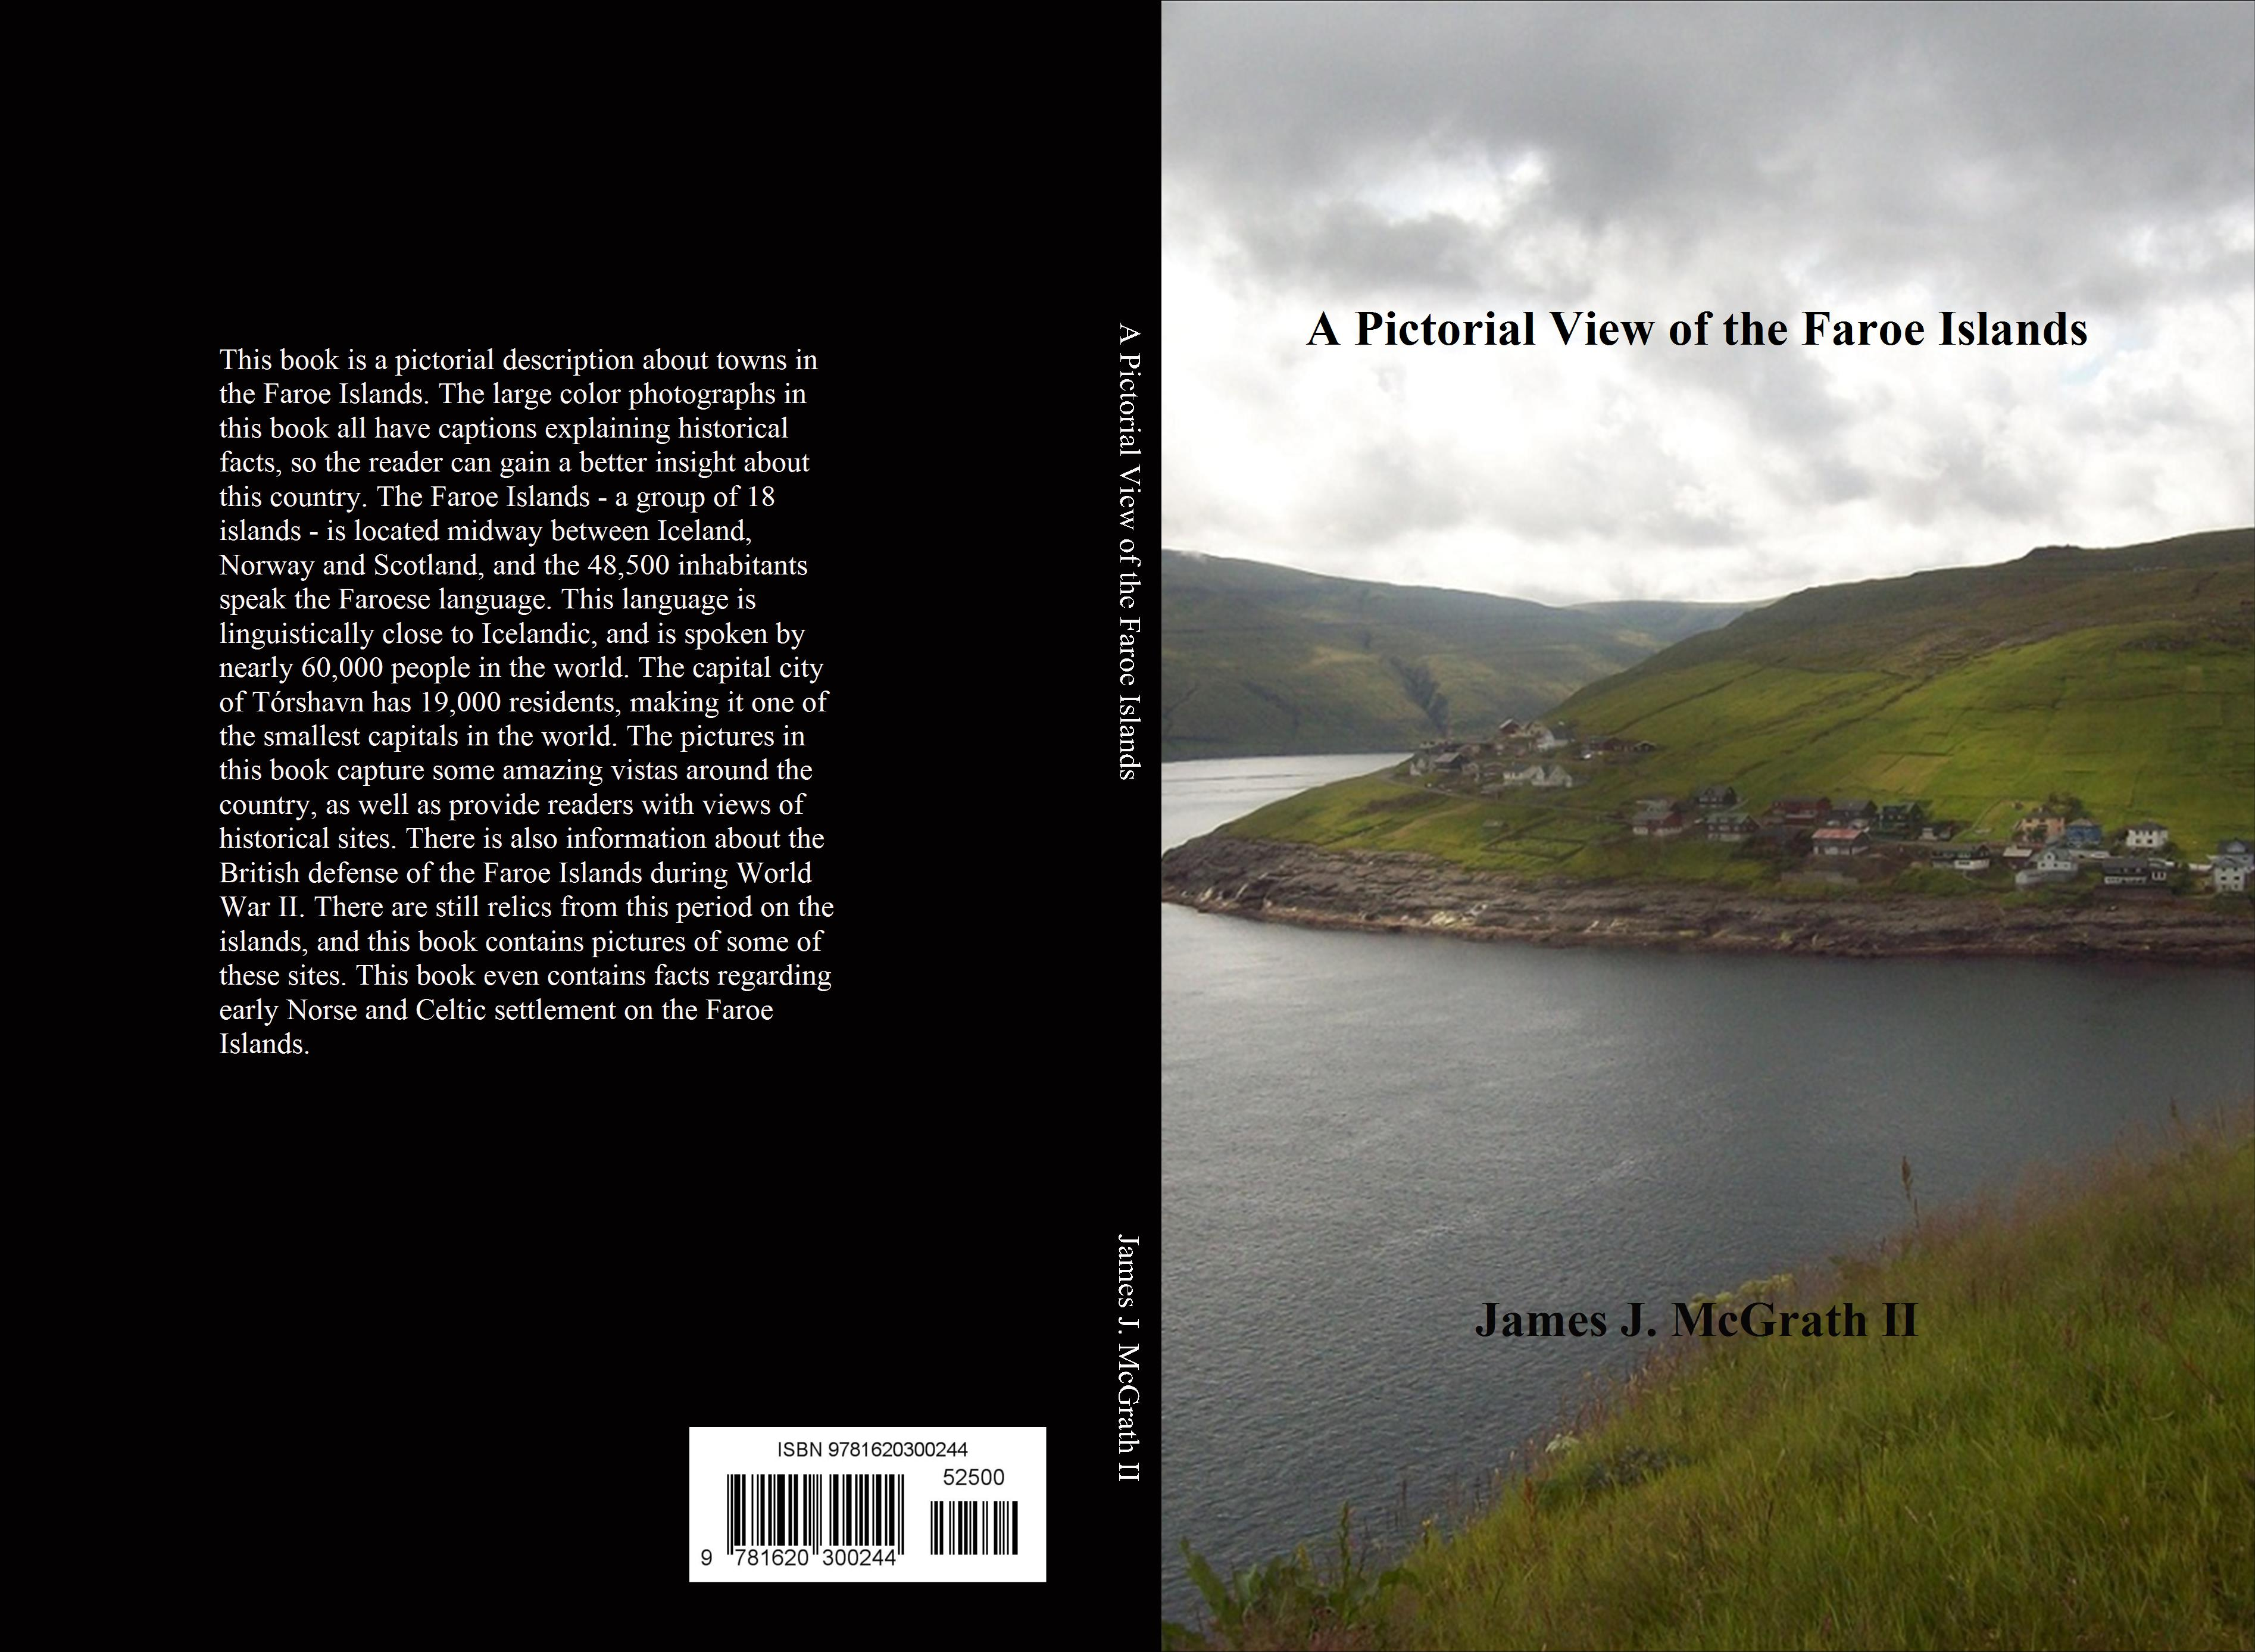 A Pictorial View of the Faroe Islands cover image